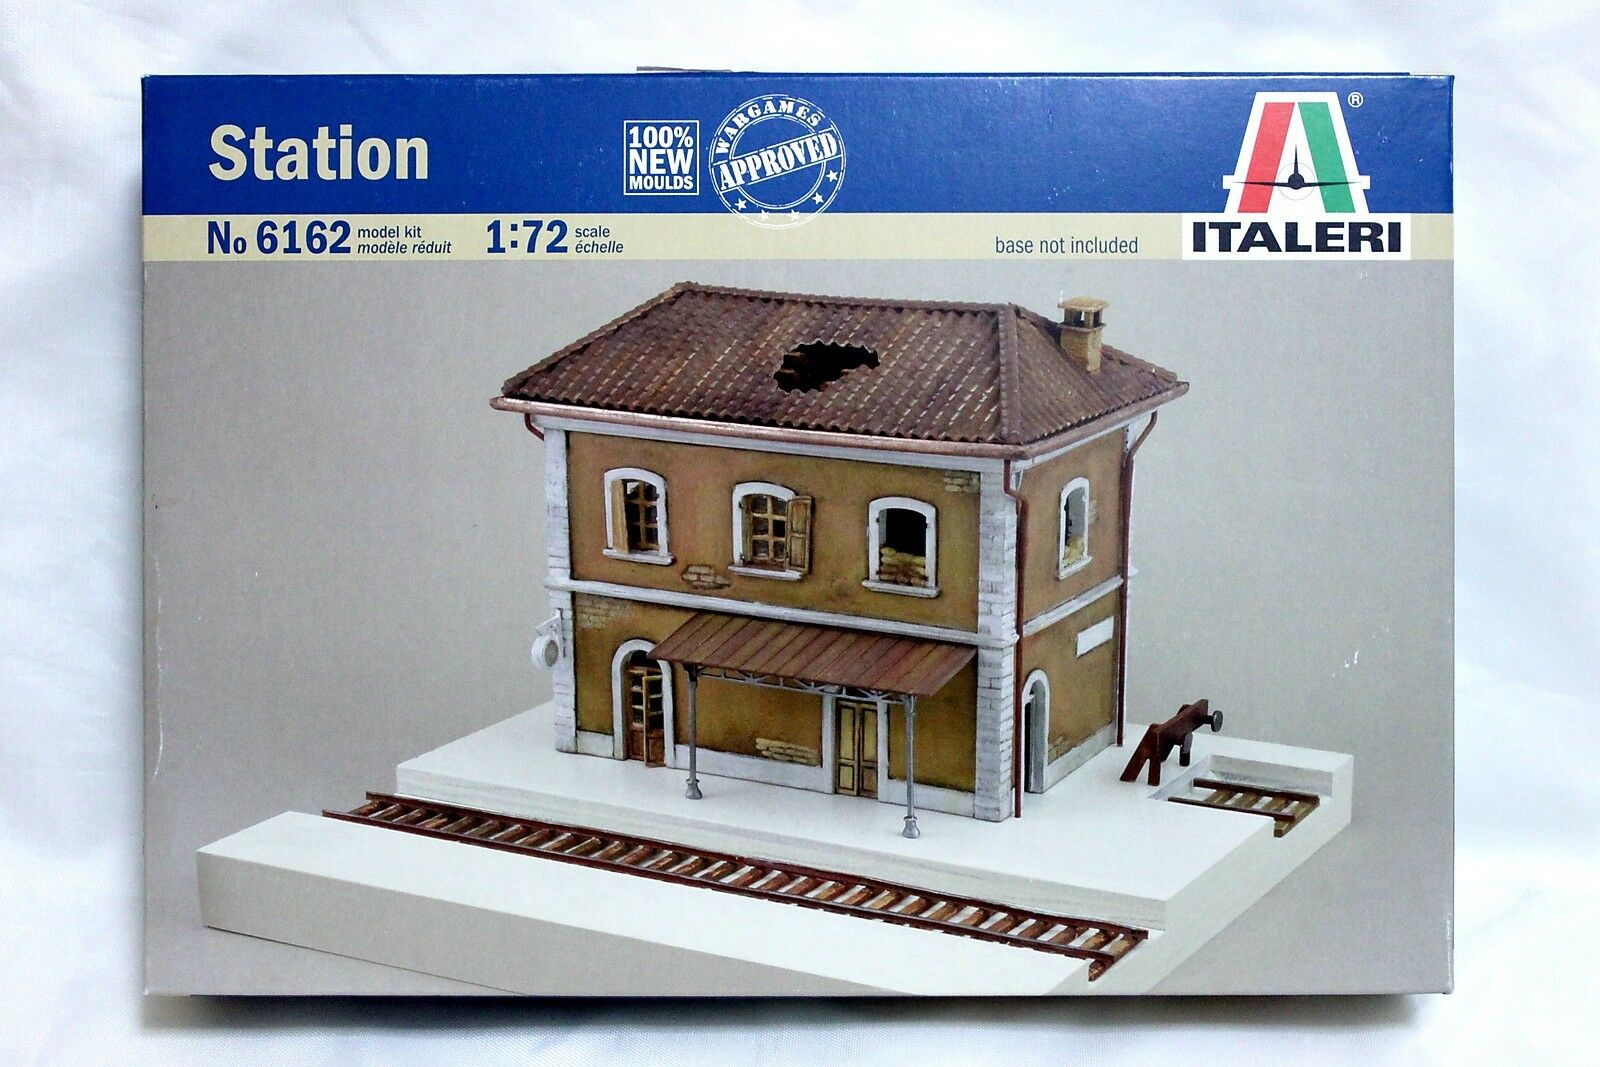 Italeri 1 72 6162 Station, WWII Military Building for Diorama